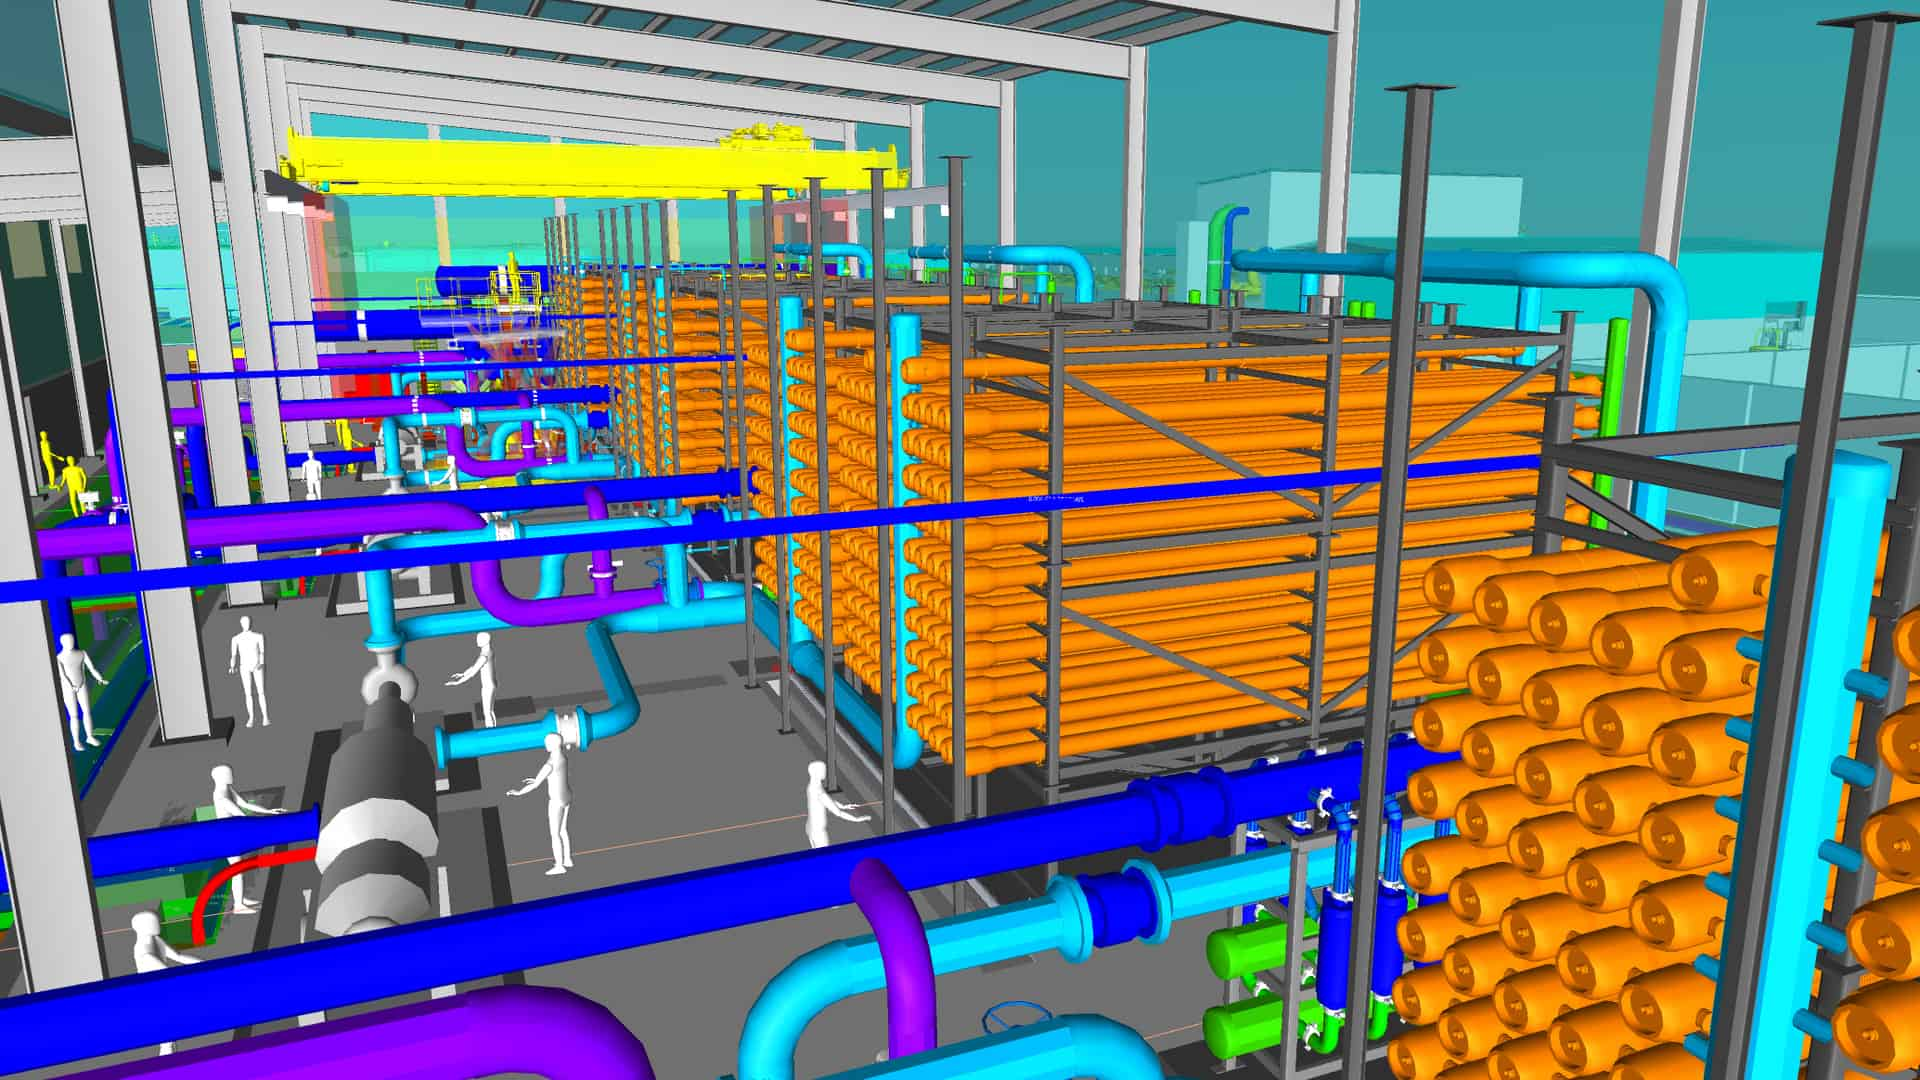 HVAC Thermal Systems desalination plant